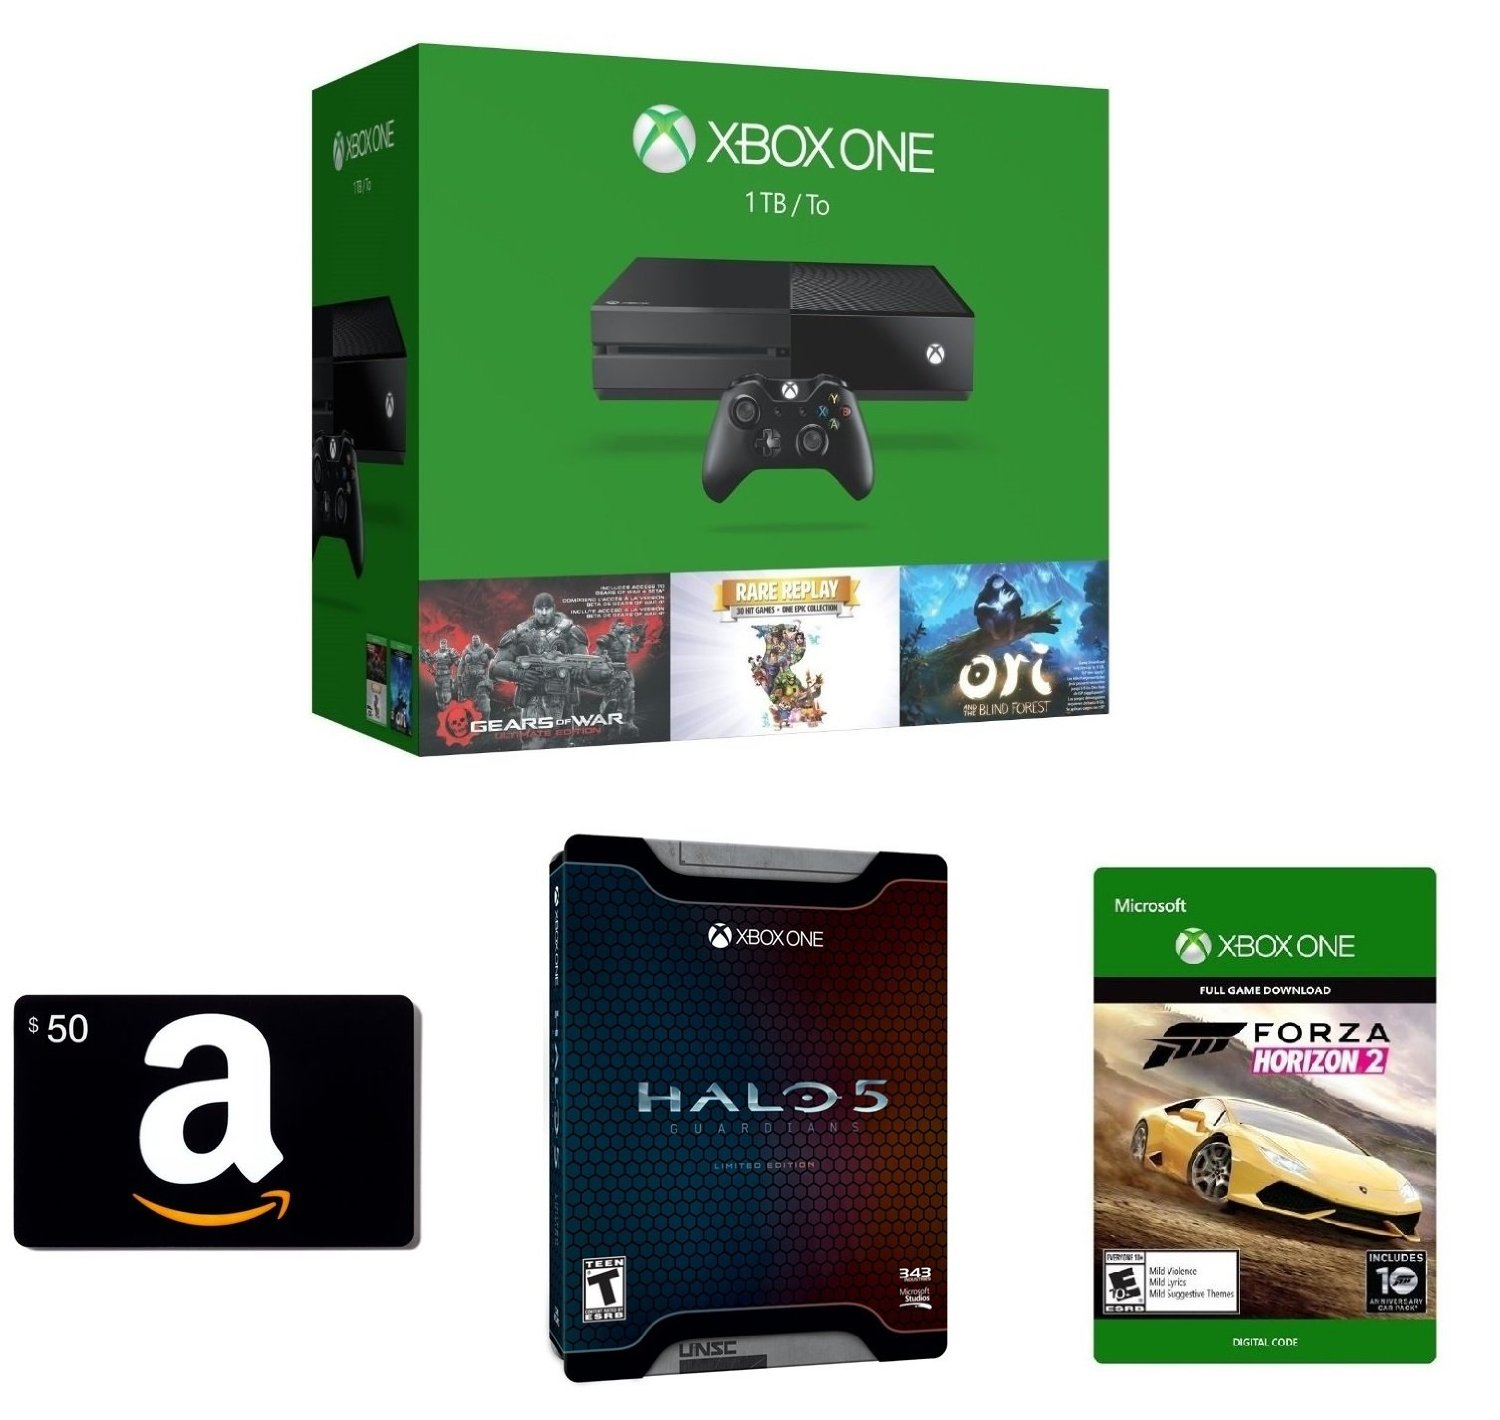 Deal: Amazon offering $50 Gift Card, Halo 5 Limited ...